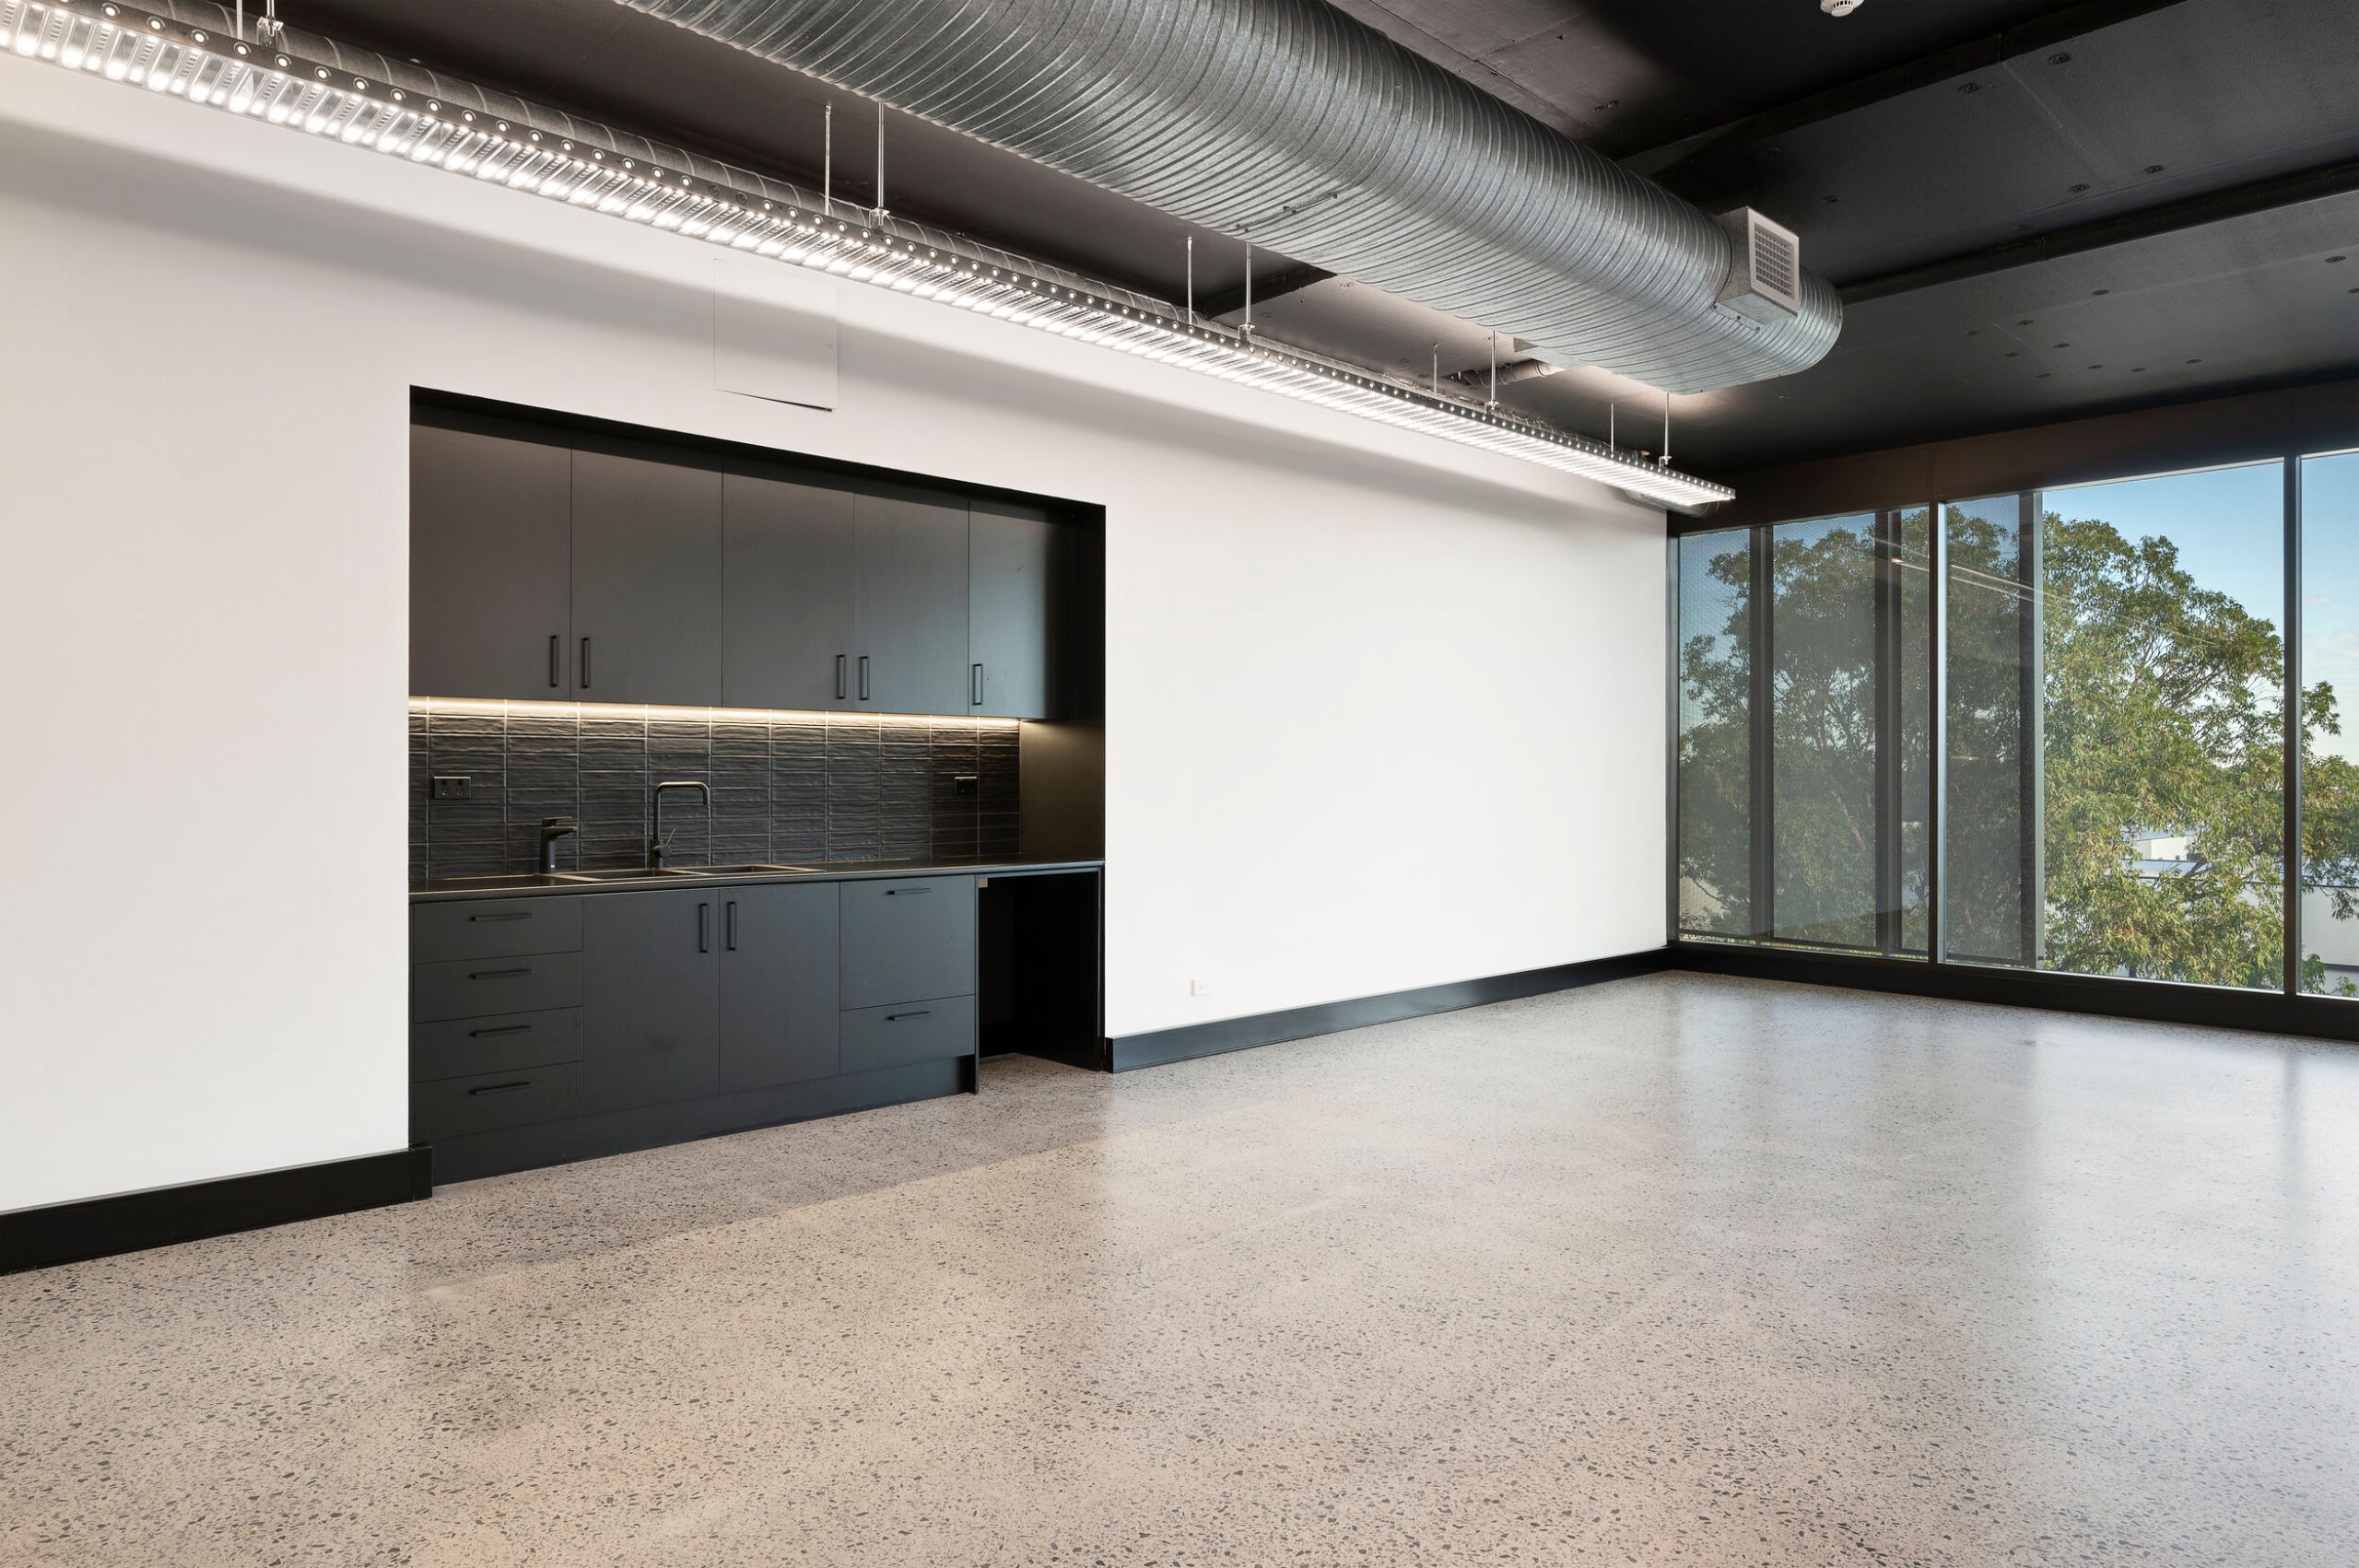 Cold shell office space with kitchenette